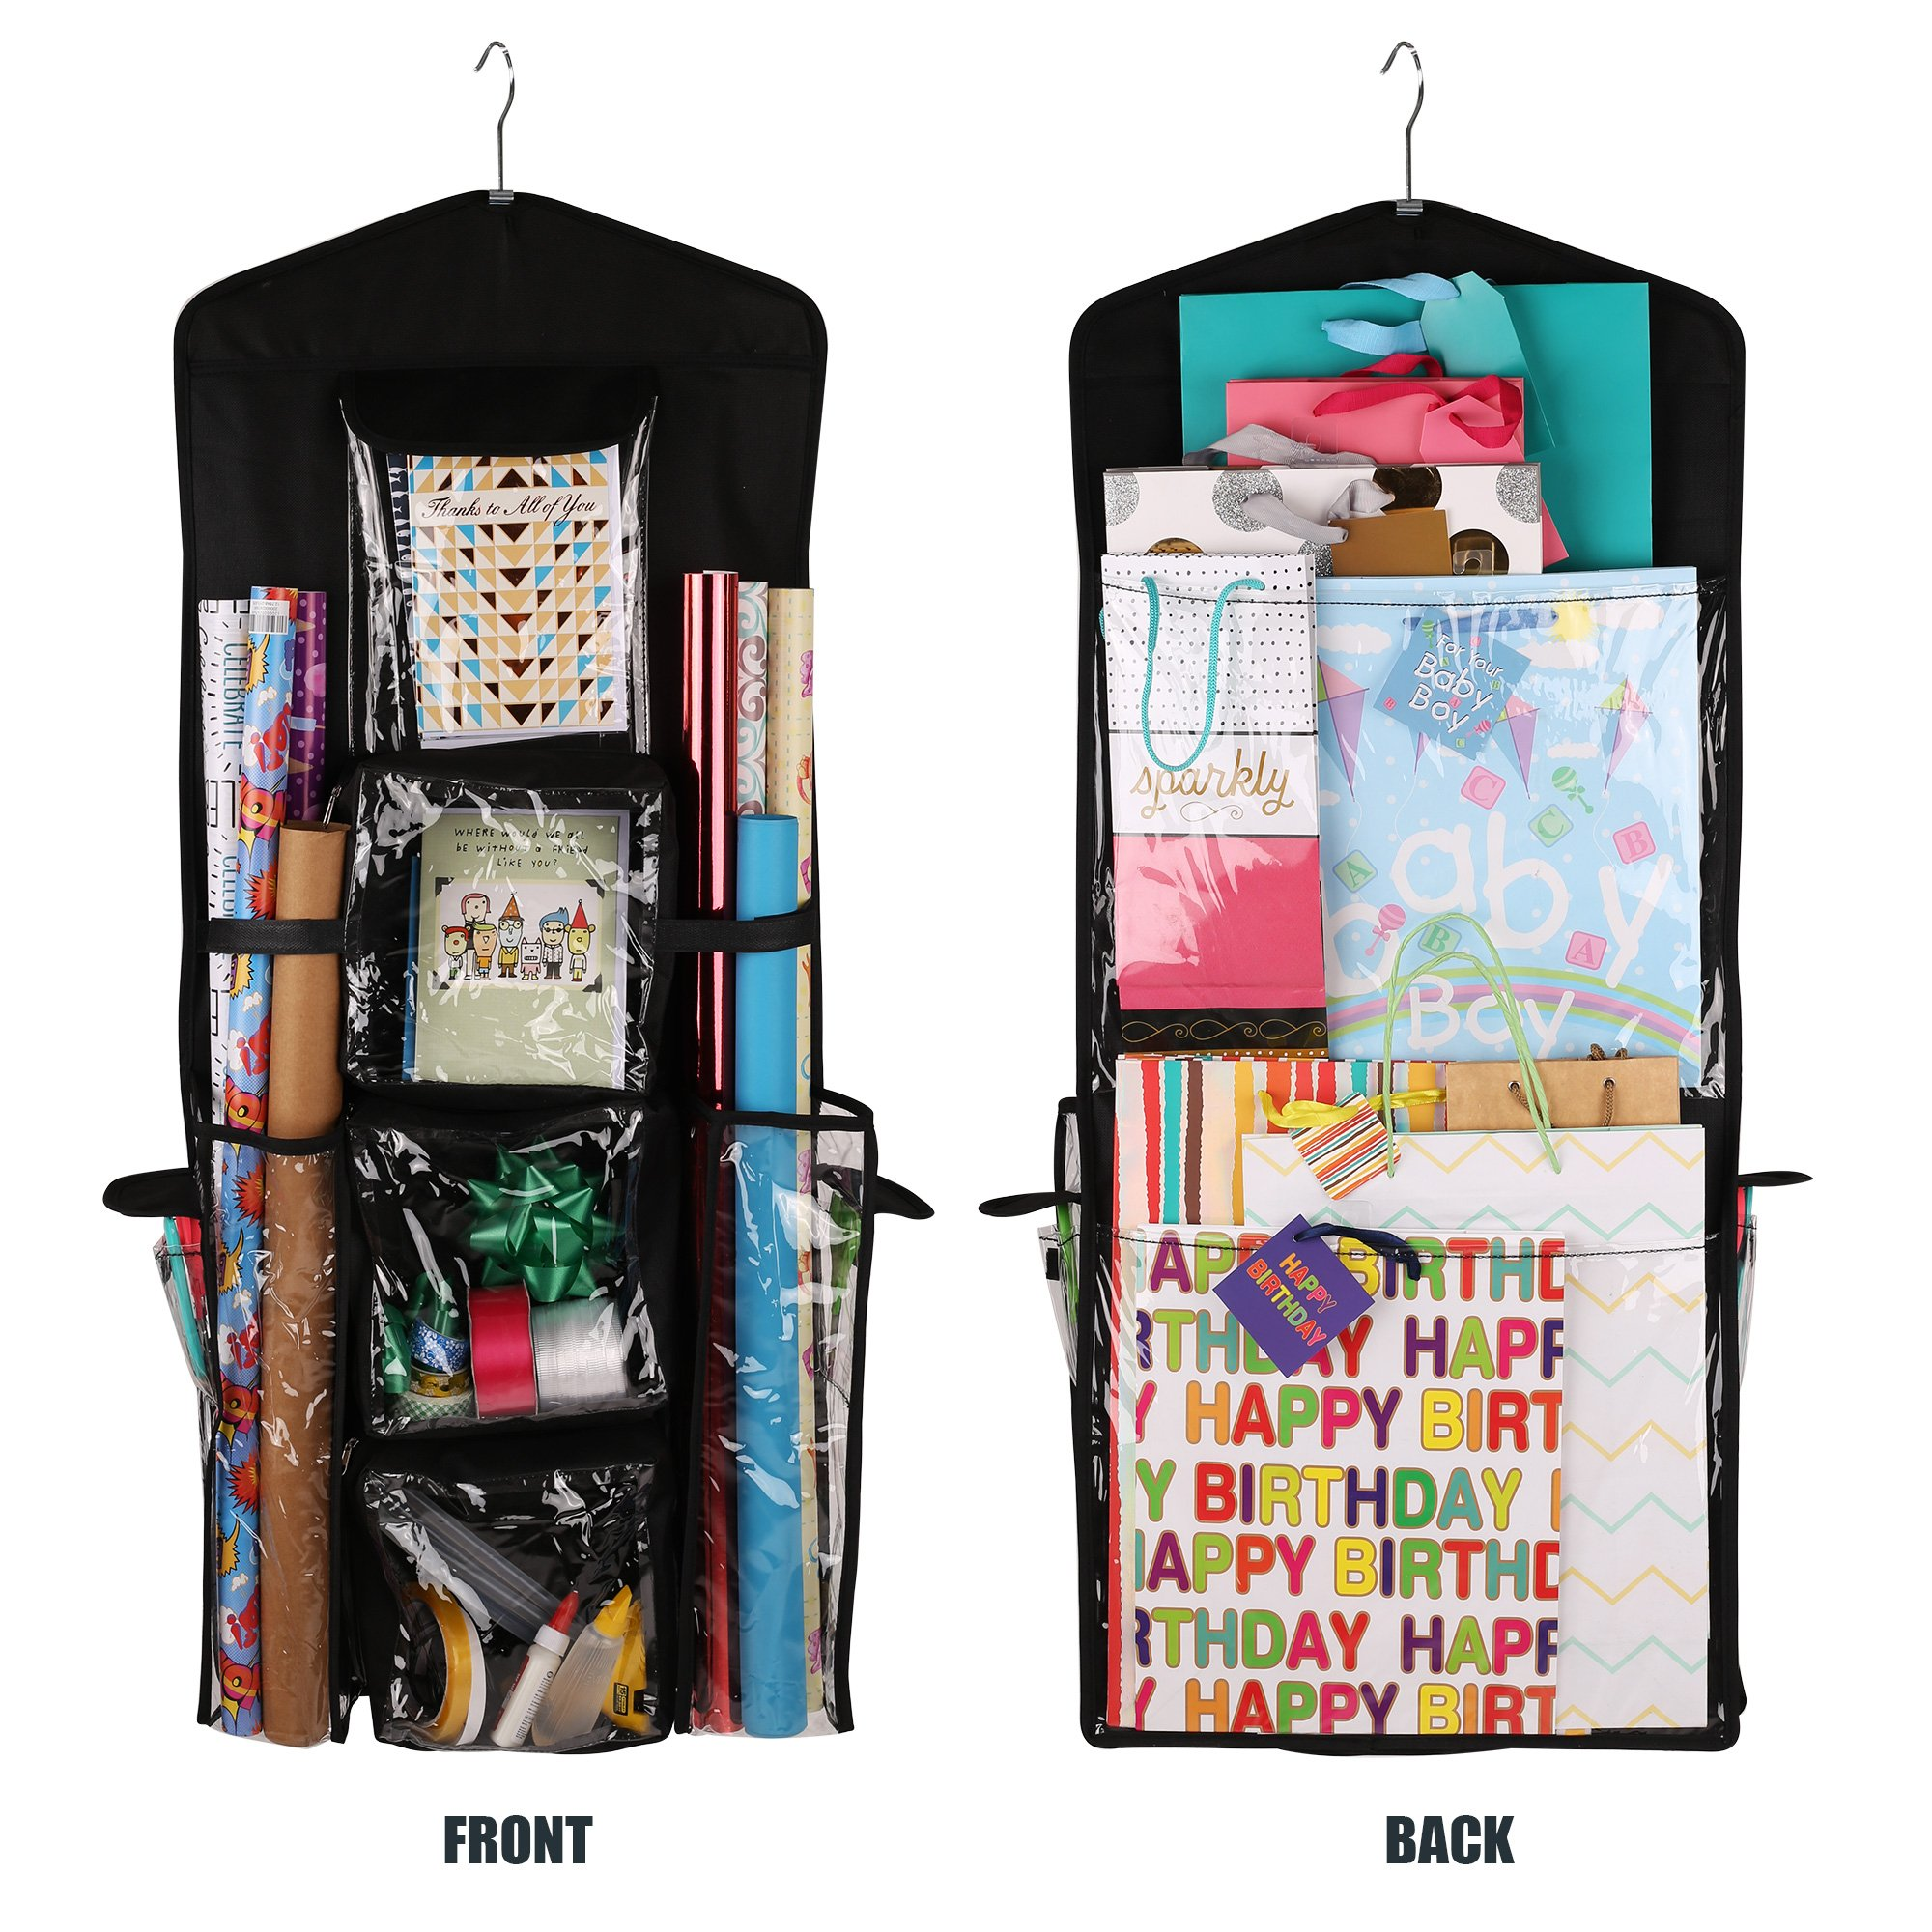 Regal Bazaar Double-Sided Hanging Gift Bag and Gift Wrap Organizer (Black) by Regal Bazaar